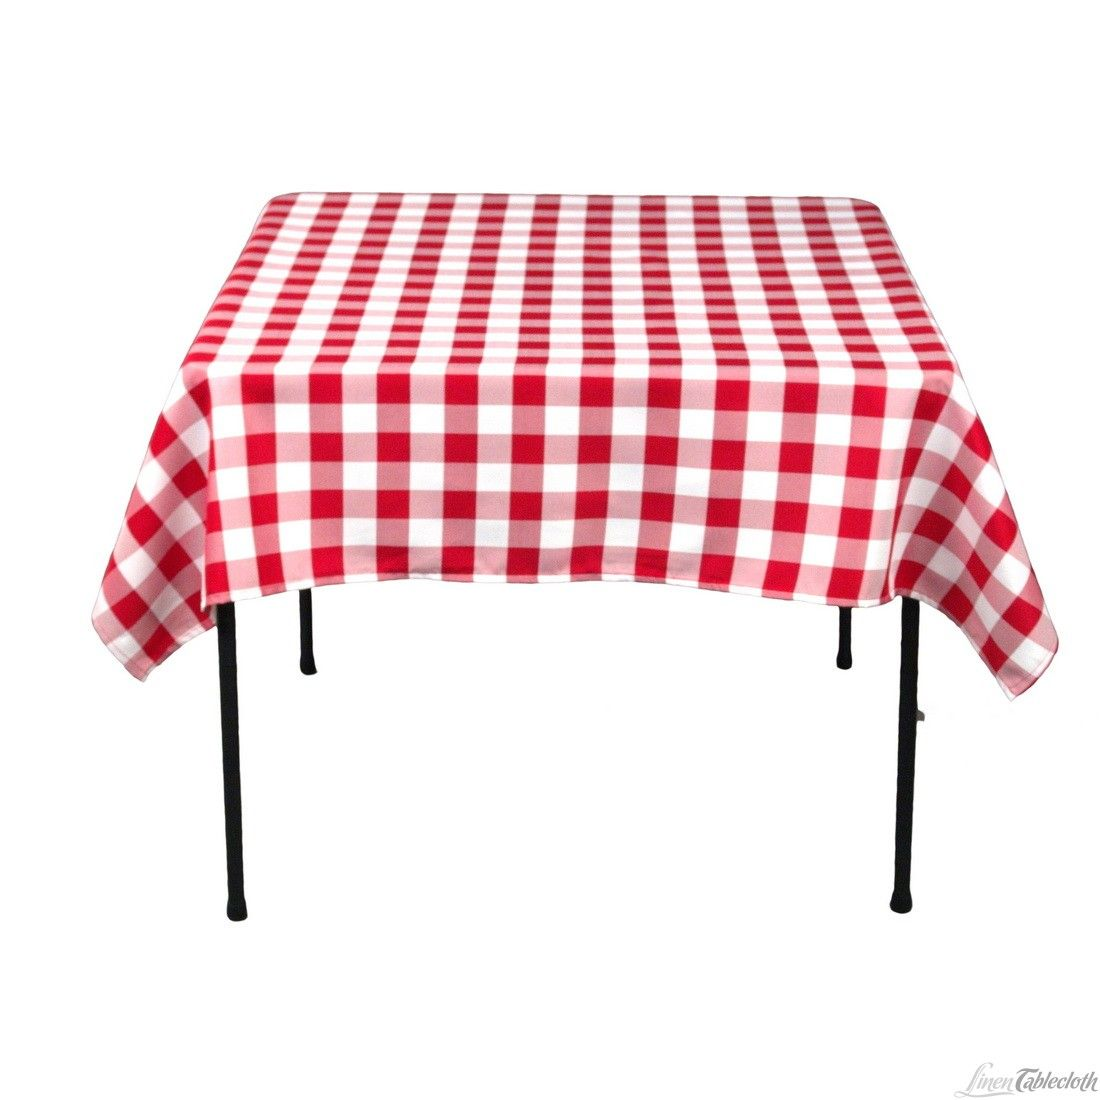 Charmant Buy 70 Inch Square, Red U0026 White Checkered, Polyester Tablecloths. These  Table Linens